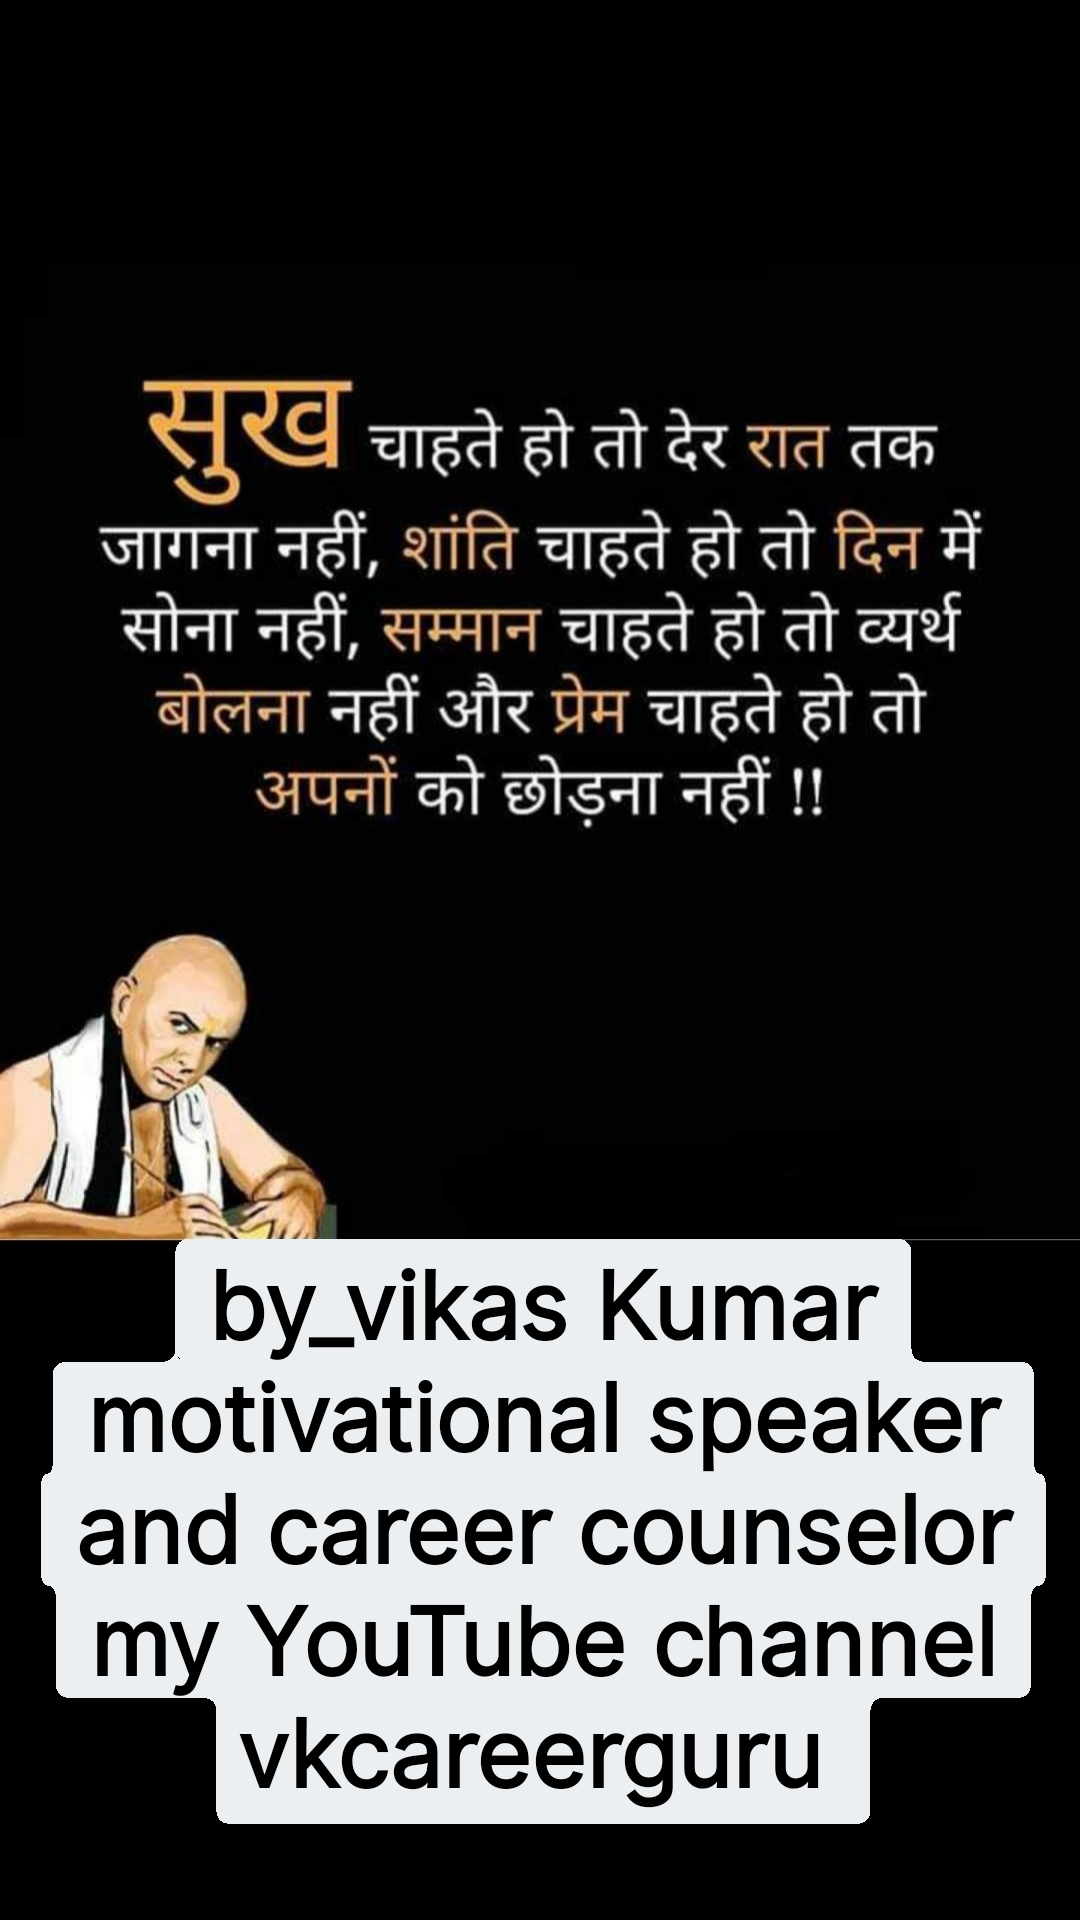 by_vikas Kumar motivational speaker and career counselor my YouTube channel vkcareerguru